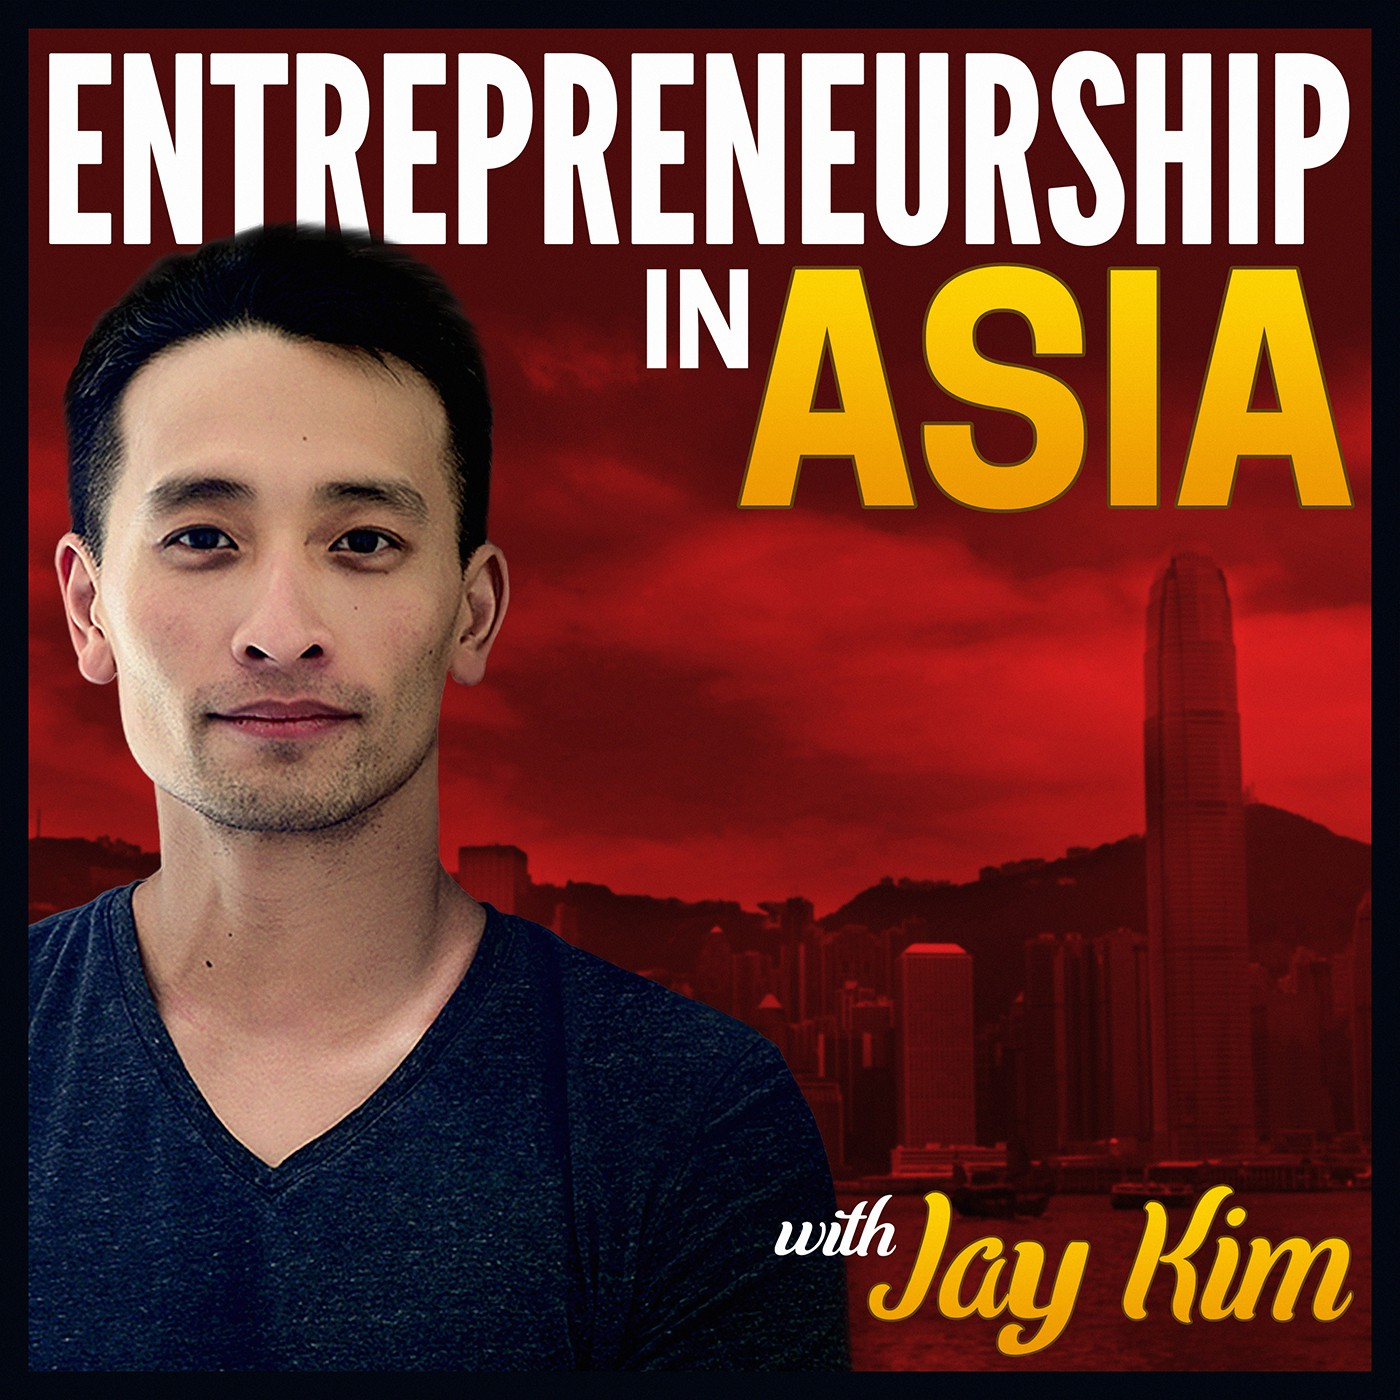 Design a Stunning Podcast Cover for a new Top Entrepreneurship Podcast